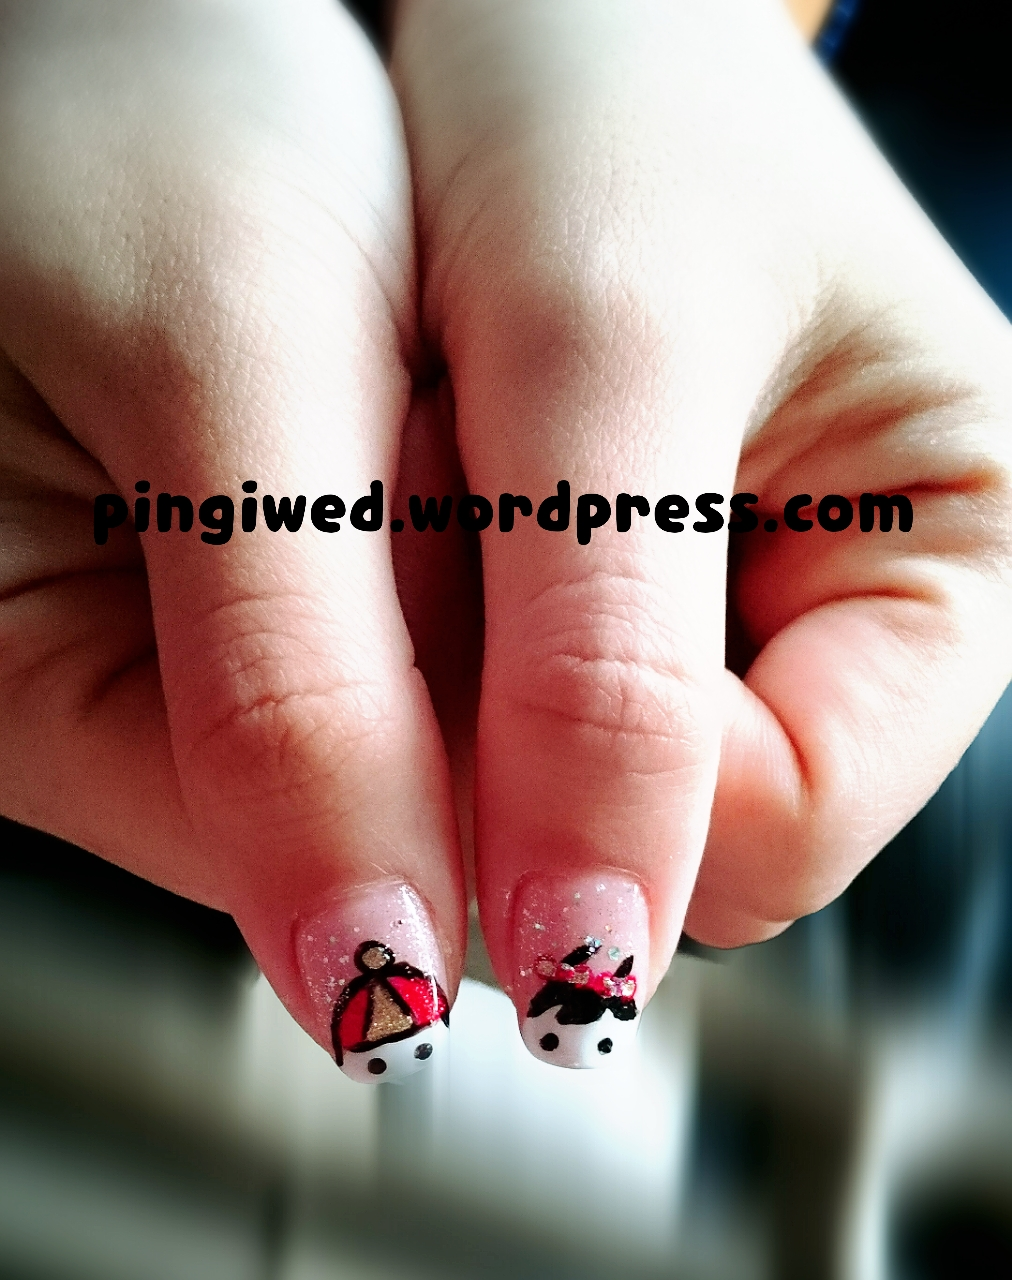 Valentines day imleks preparation keep calm read my stories cny nails part 1 cny nails part 2 prinsesfo Gallery